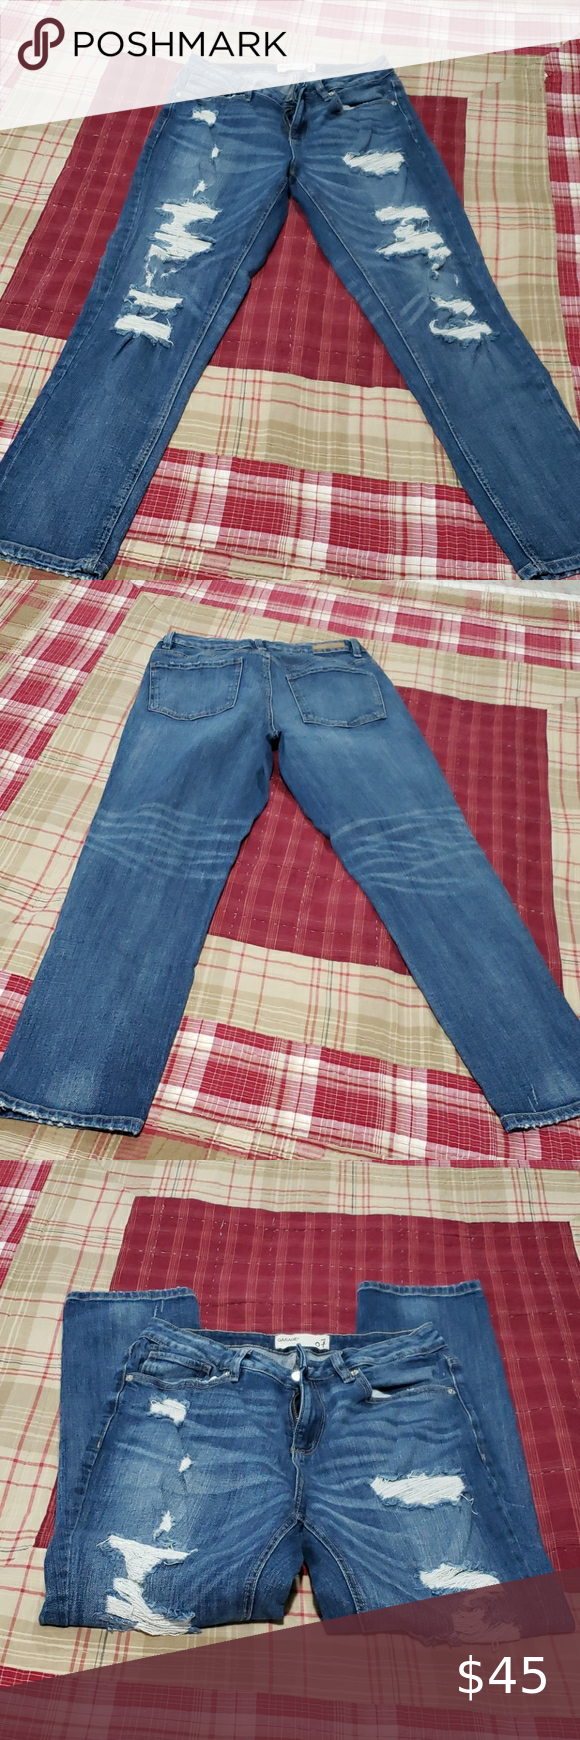 Garage Distressed jeans size 7 GARAGE SIZE 7 DISTRESSED JEANS EXCELLENT PRE-OWNE…